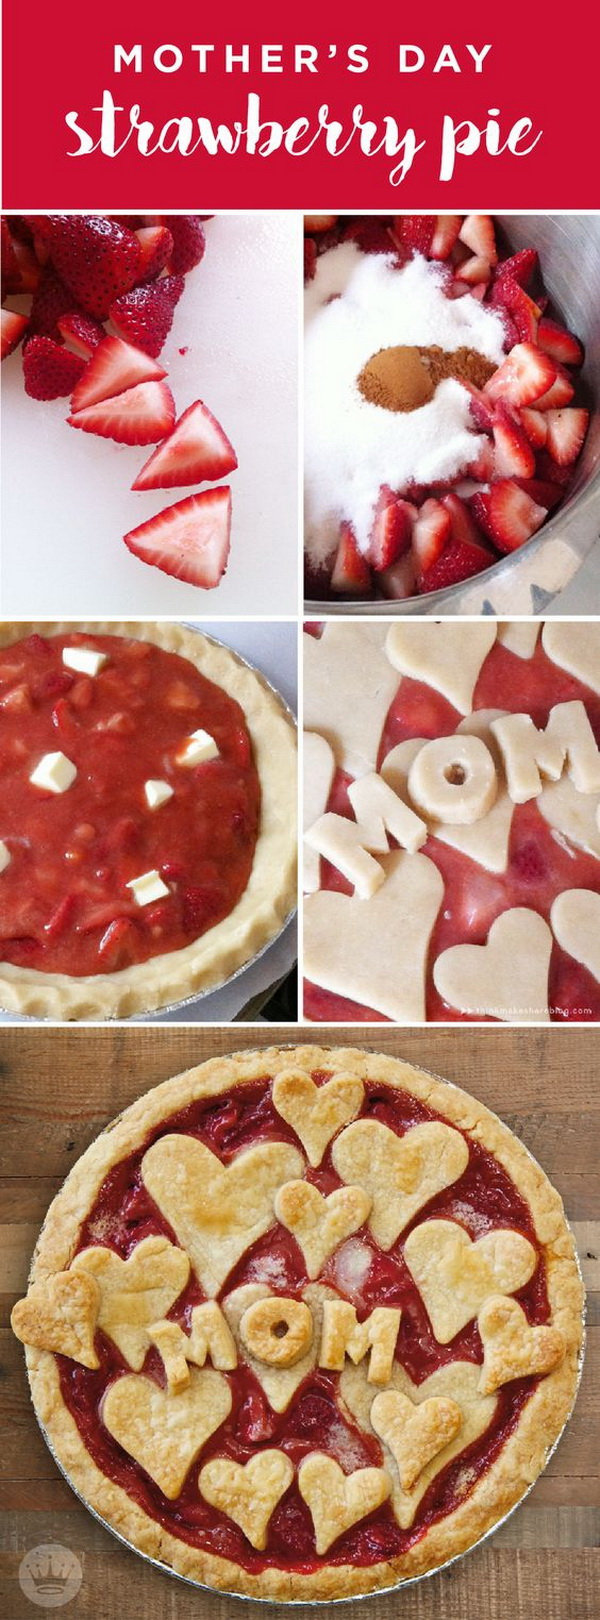 Mother's Day Crafts and gifts: Homemade Mother's Day Strawberry Pie.